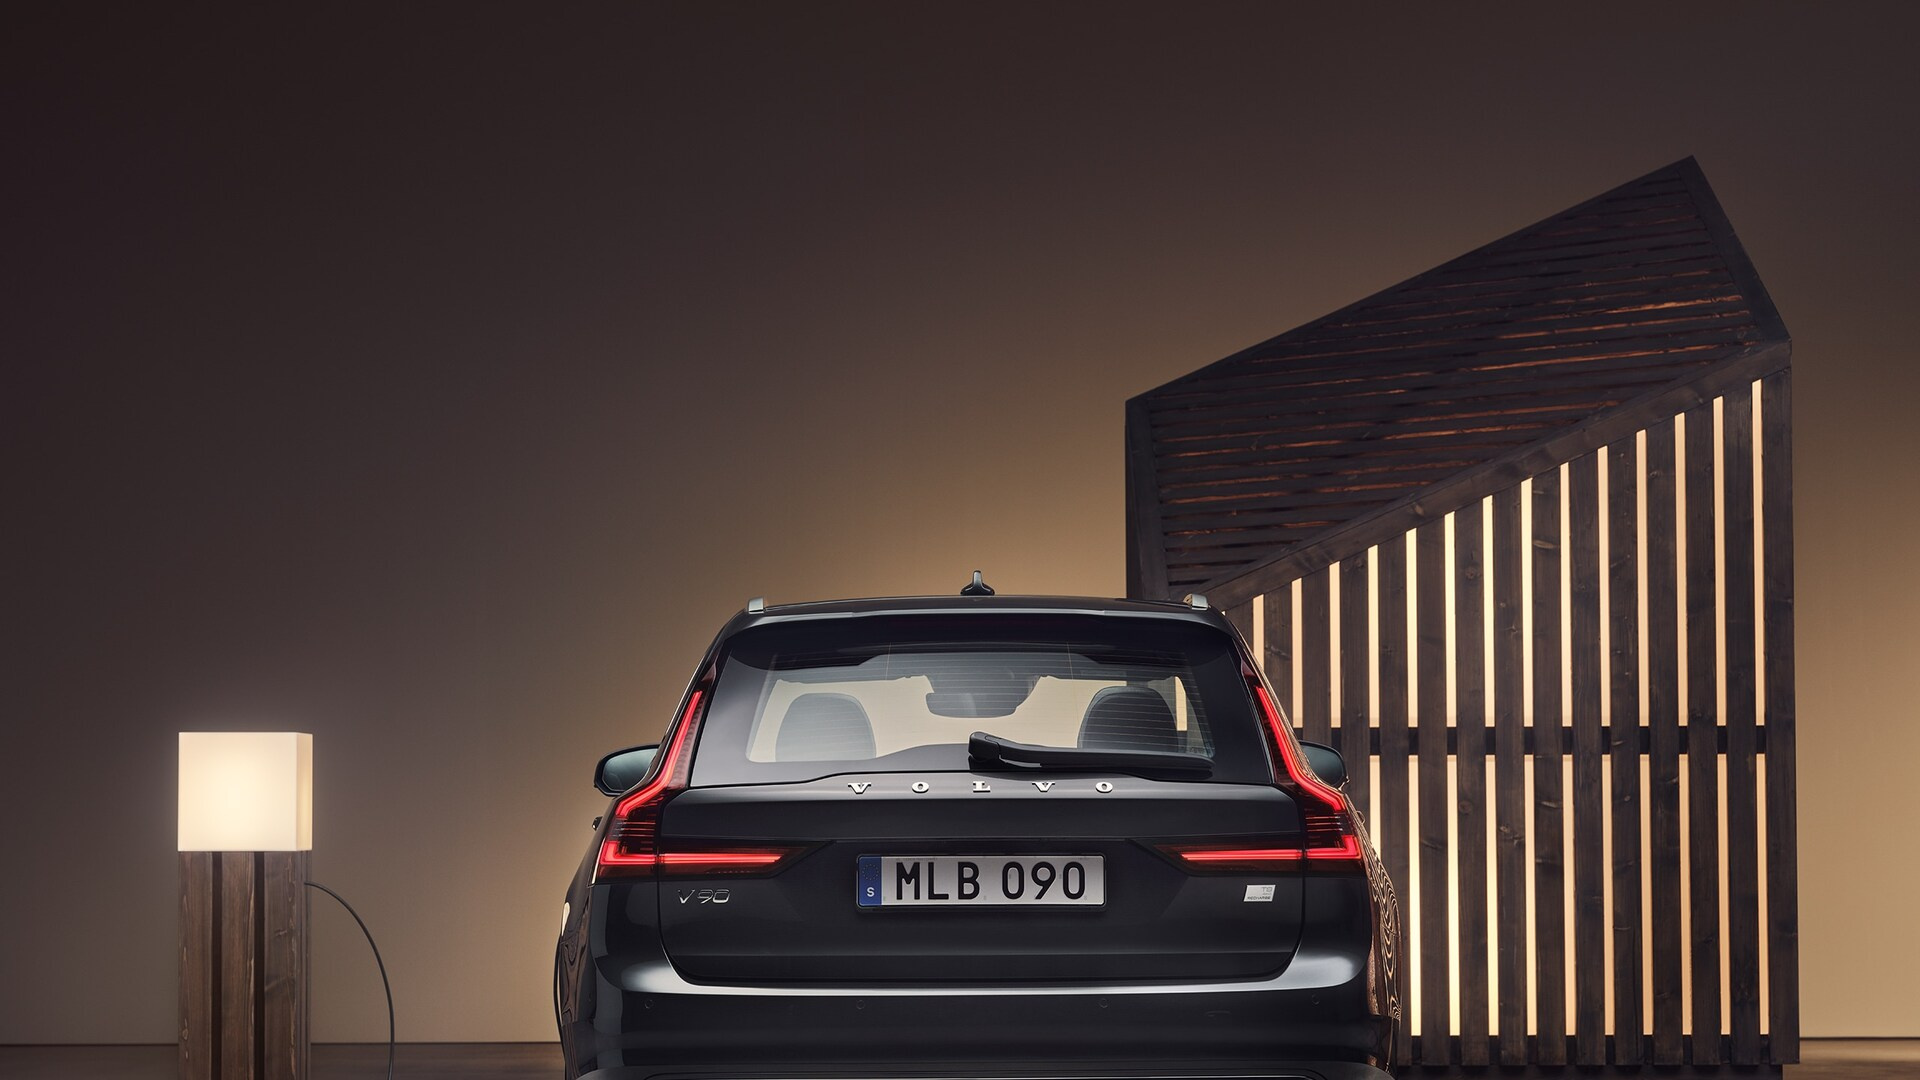 v90-recharge-gallery-1-16x9.jpg